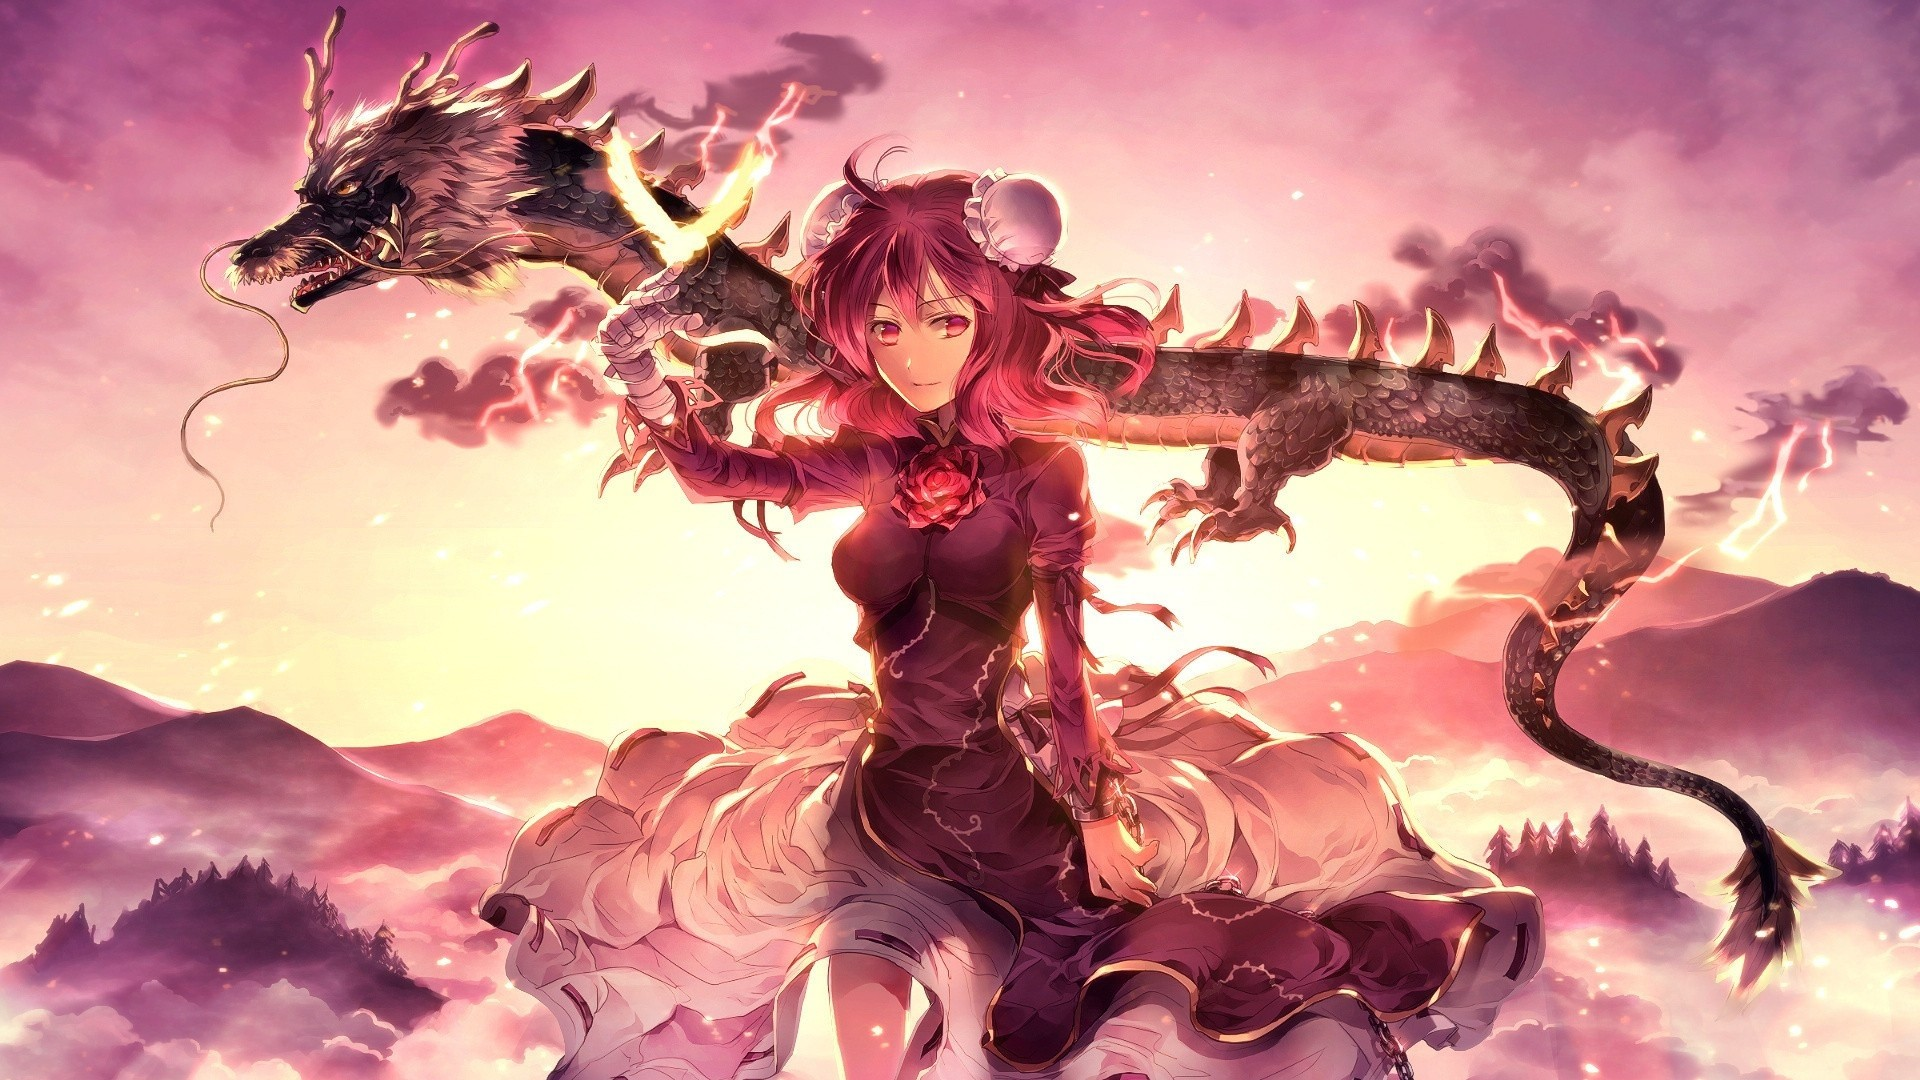 Anime Hd Wallpaper 75 Pictures